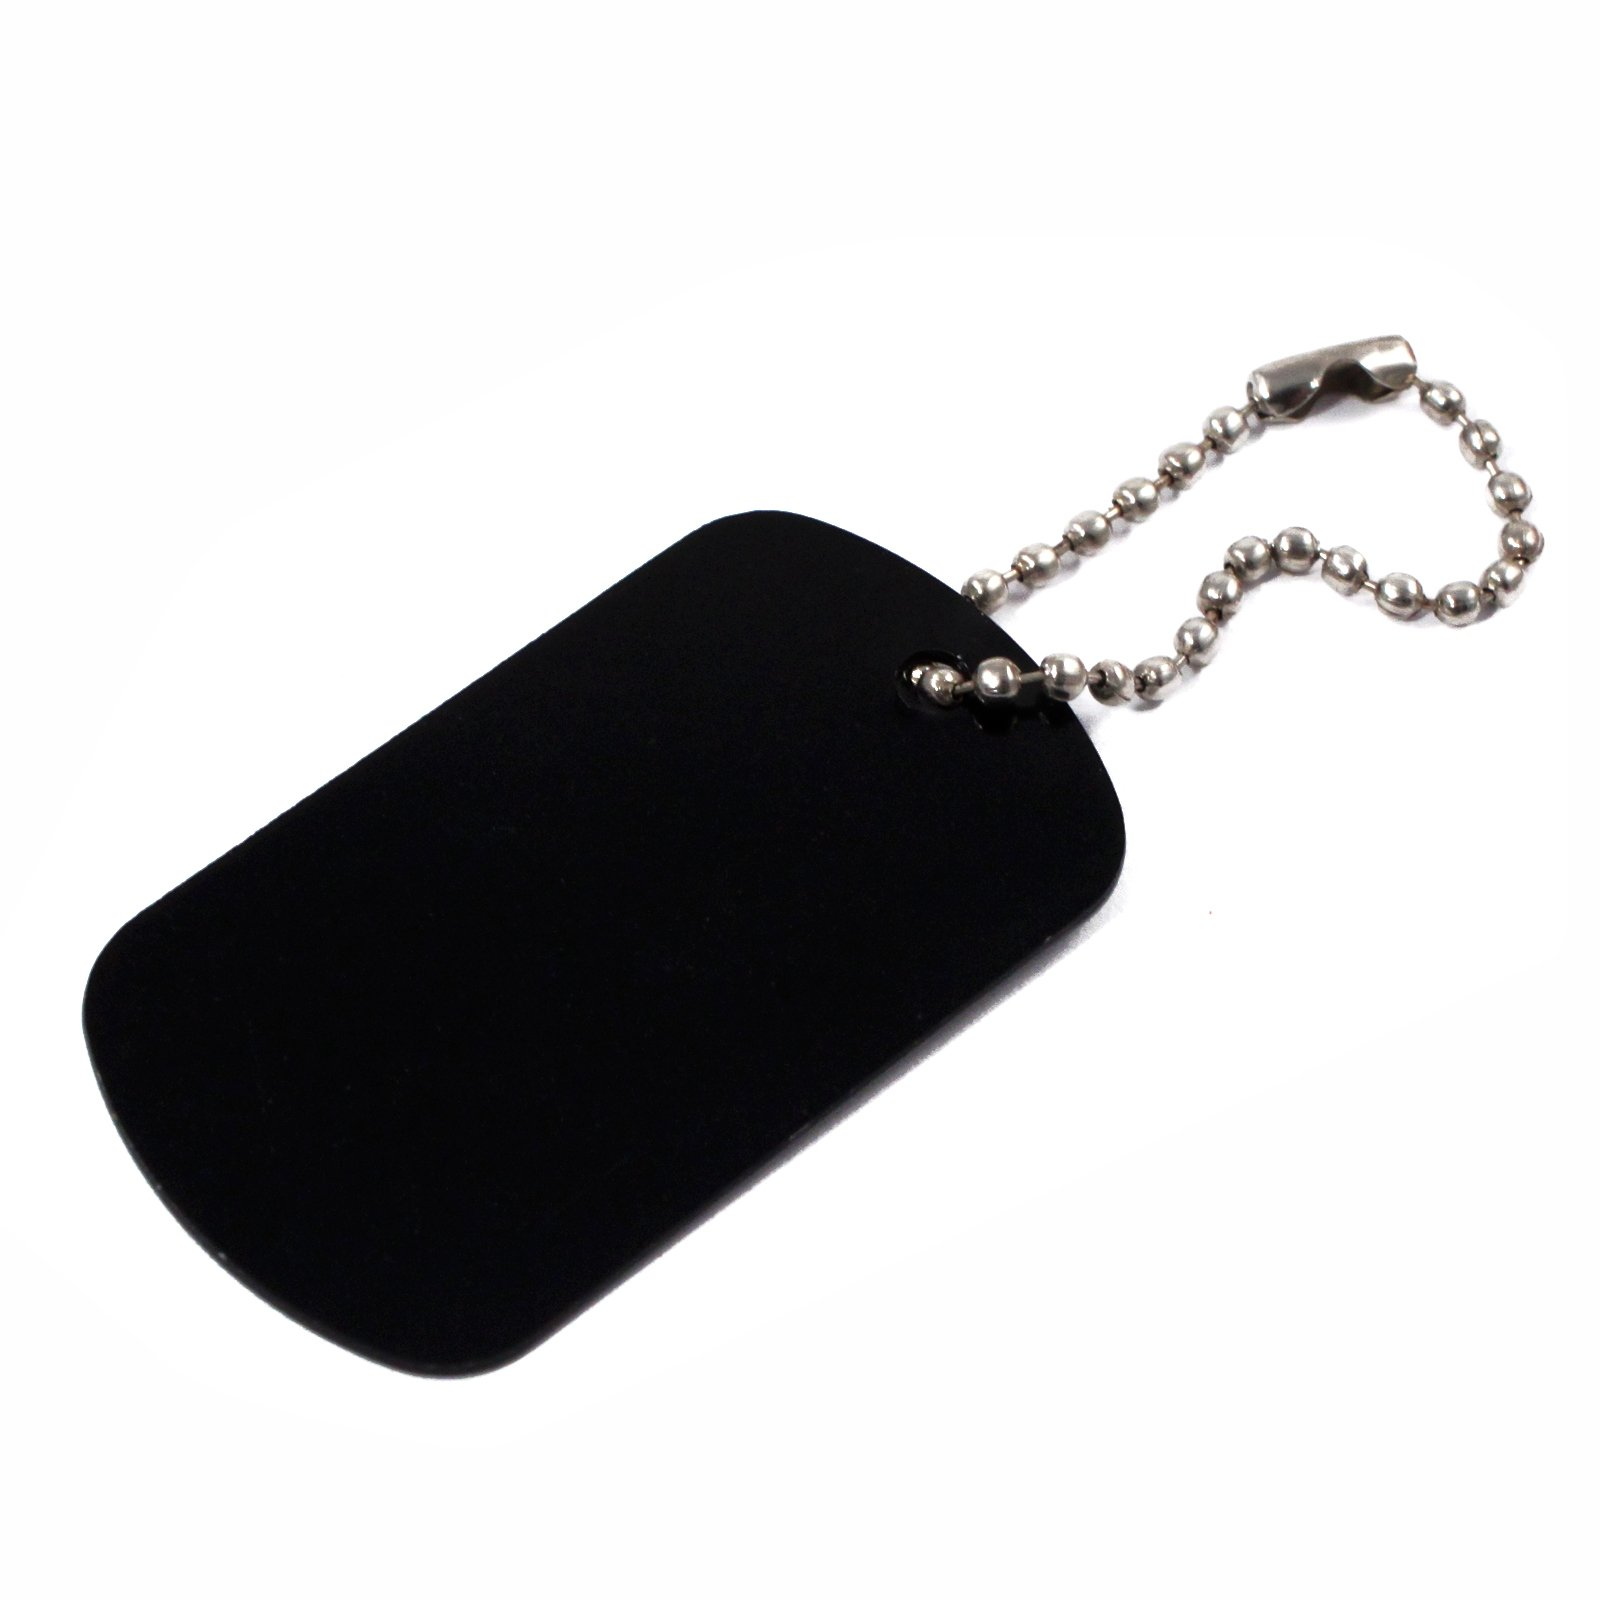 Aluminum Dog Tags Engraveable Blank Key Chains Military Identification